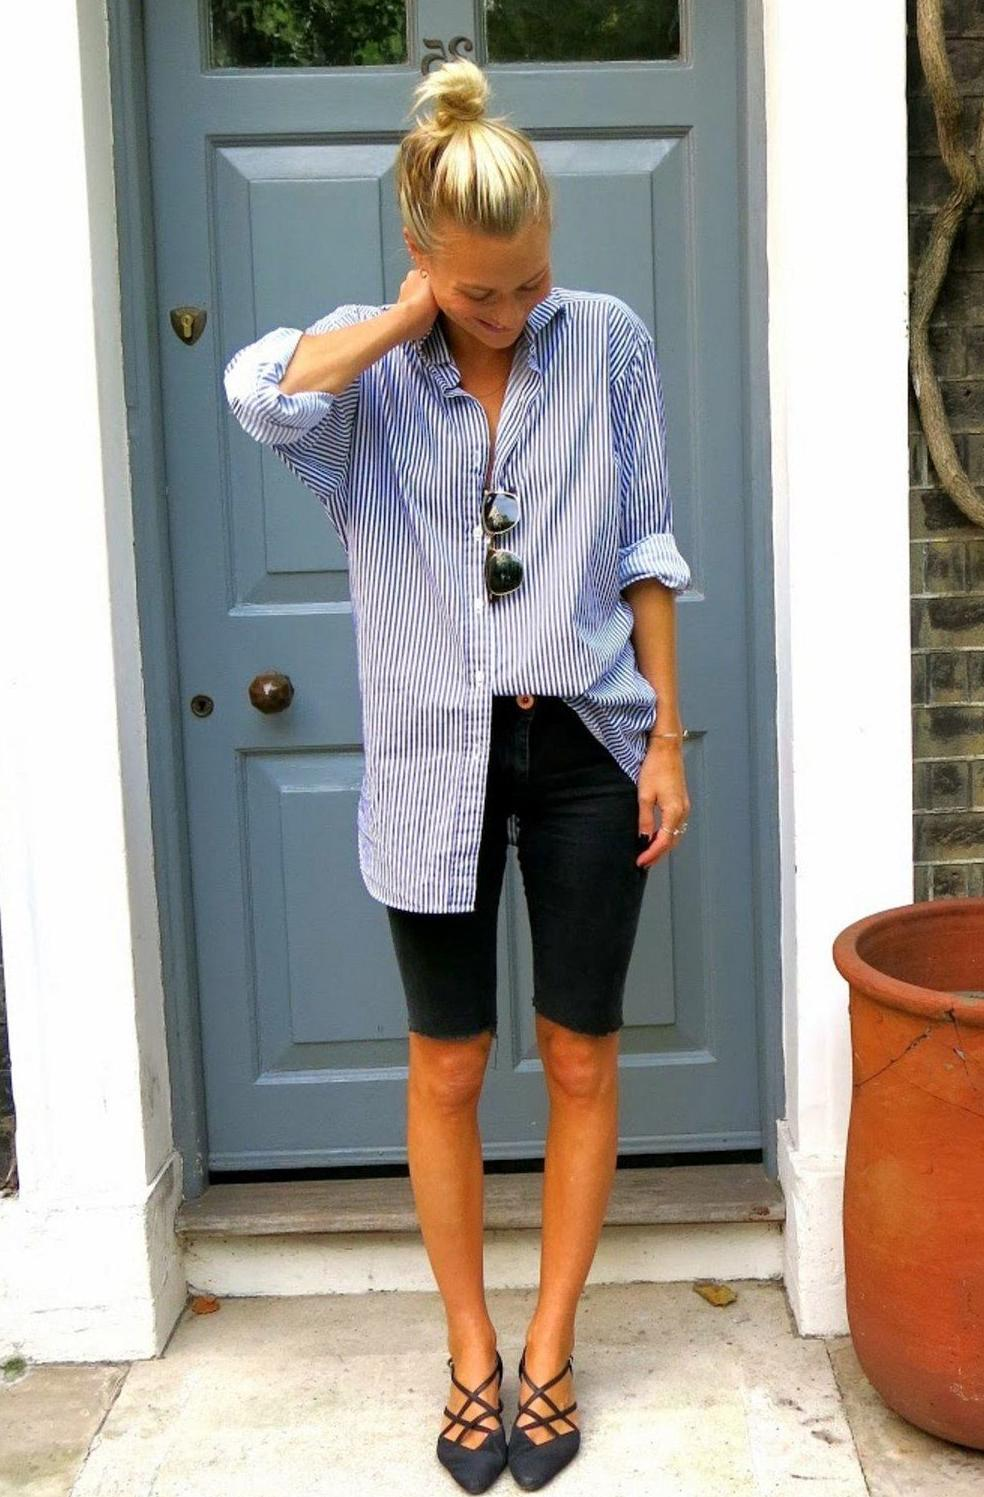 Long Shorts: Easy To Wear Outfit Ideas 2022